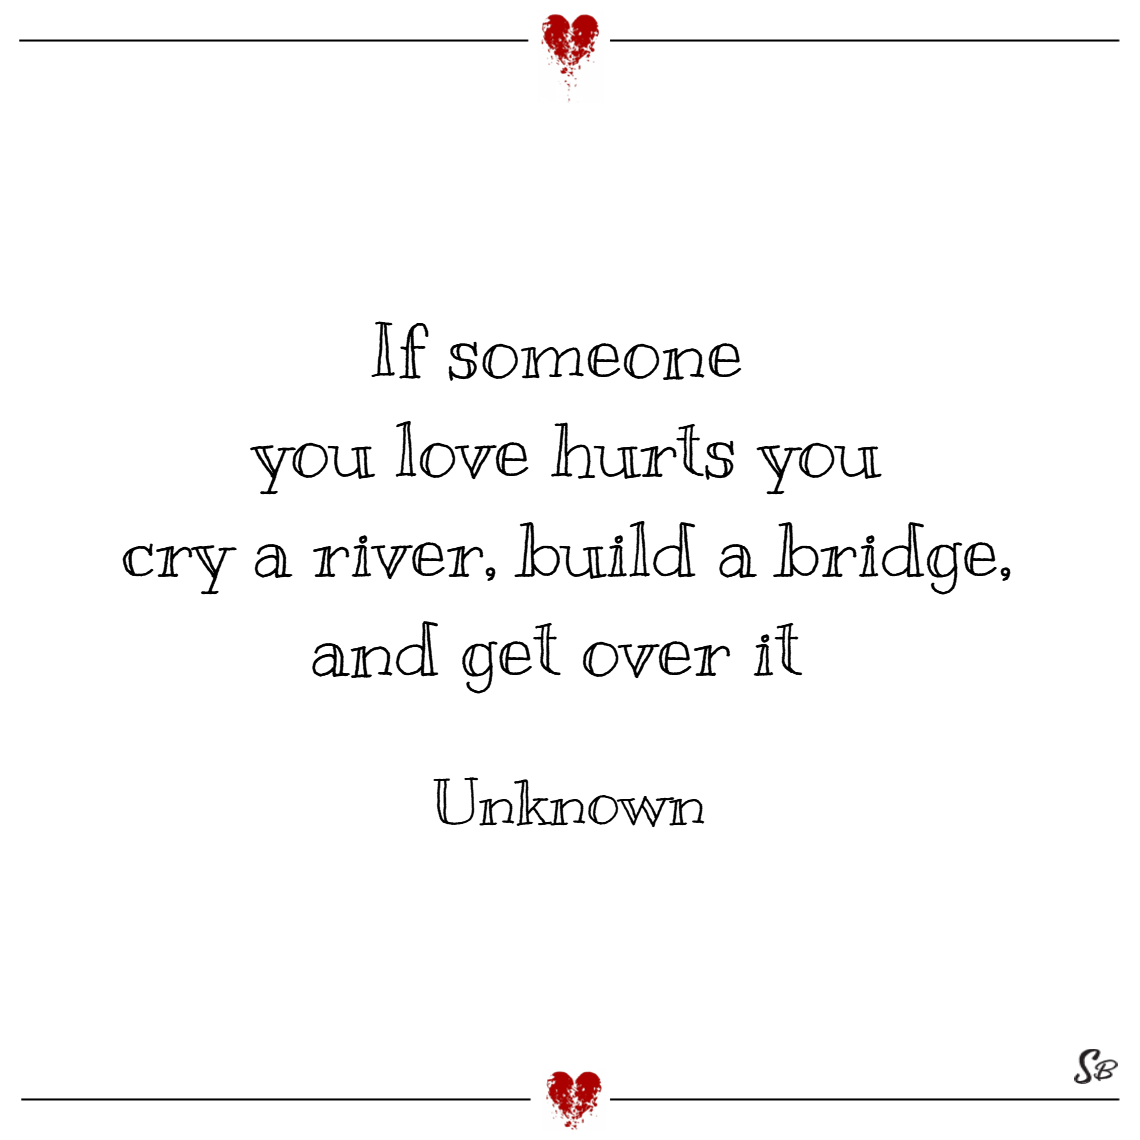 If someone you love hurts you cry a river, build a bridge, and get over it. unknown